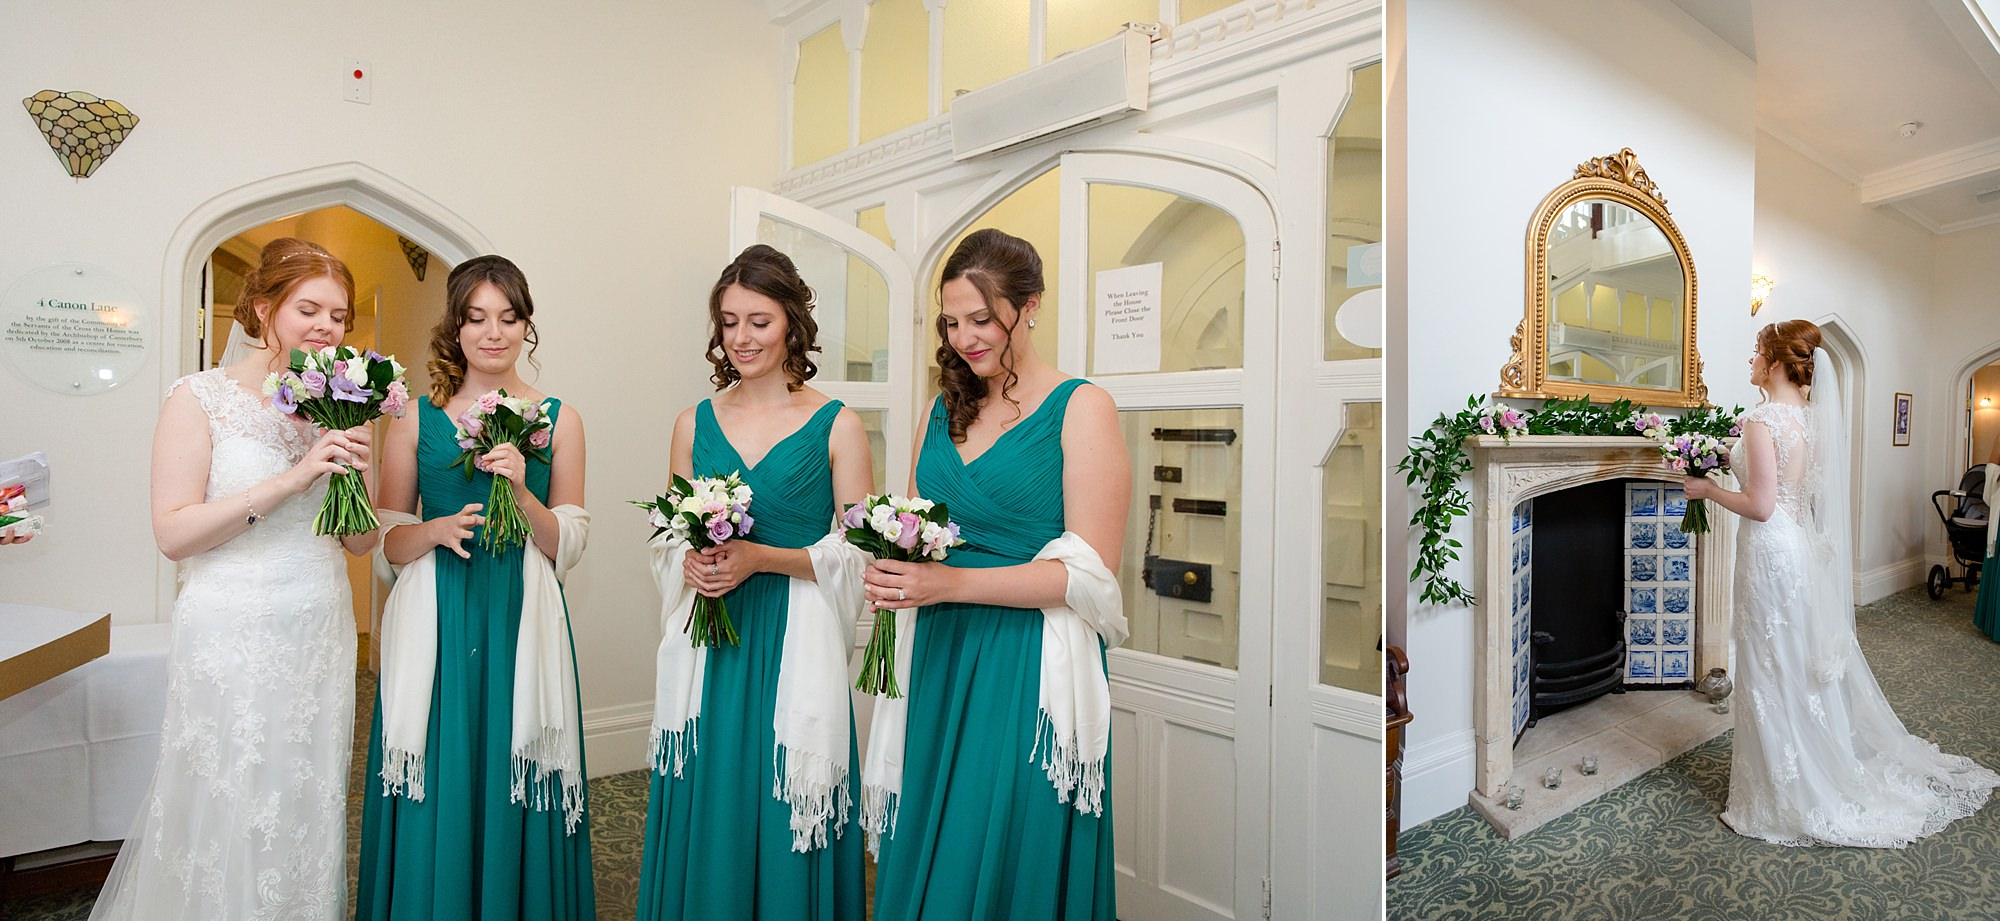 Canon Lane Chichester wedding bride and bridesmaids with bouquets